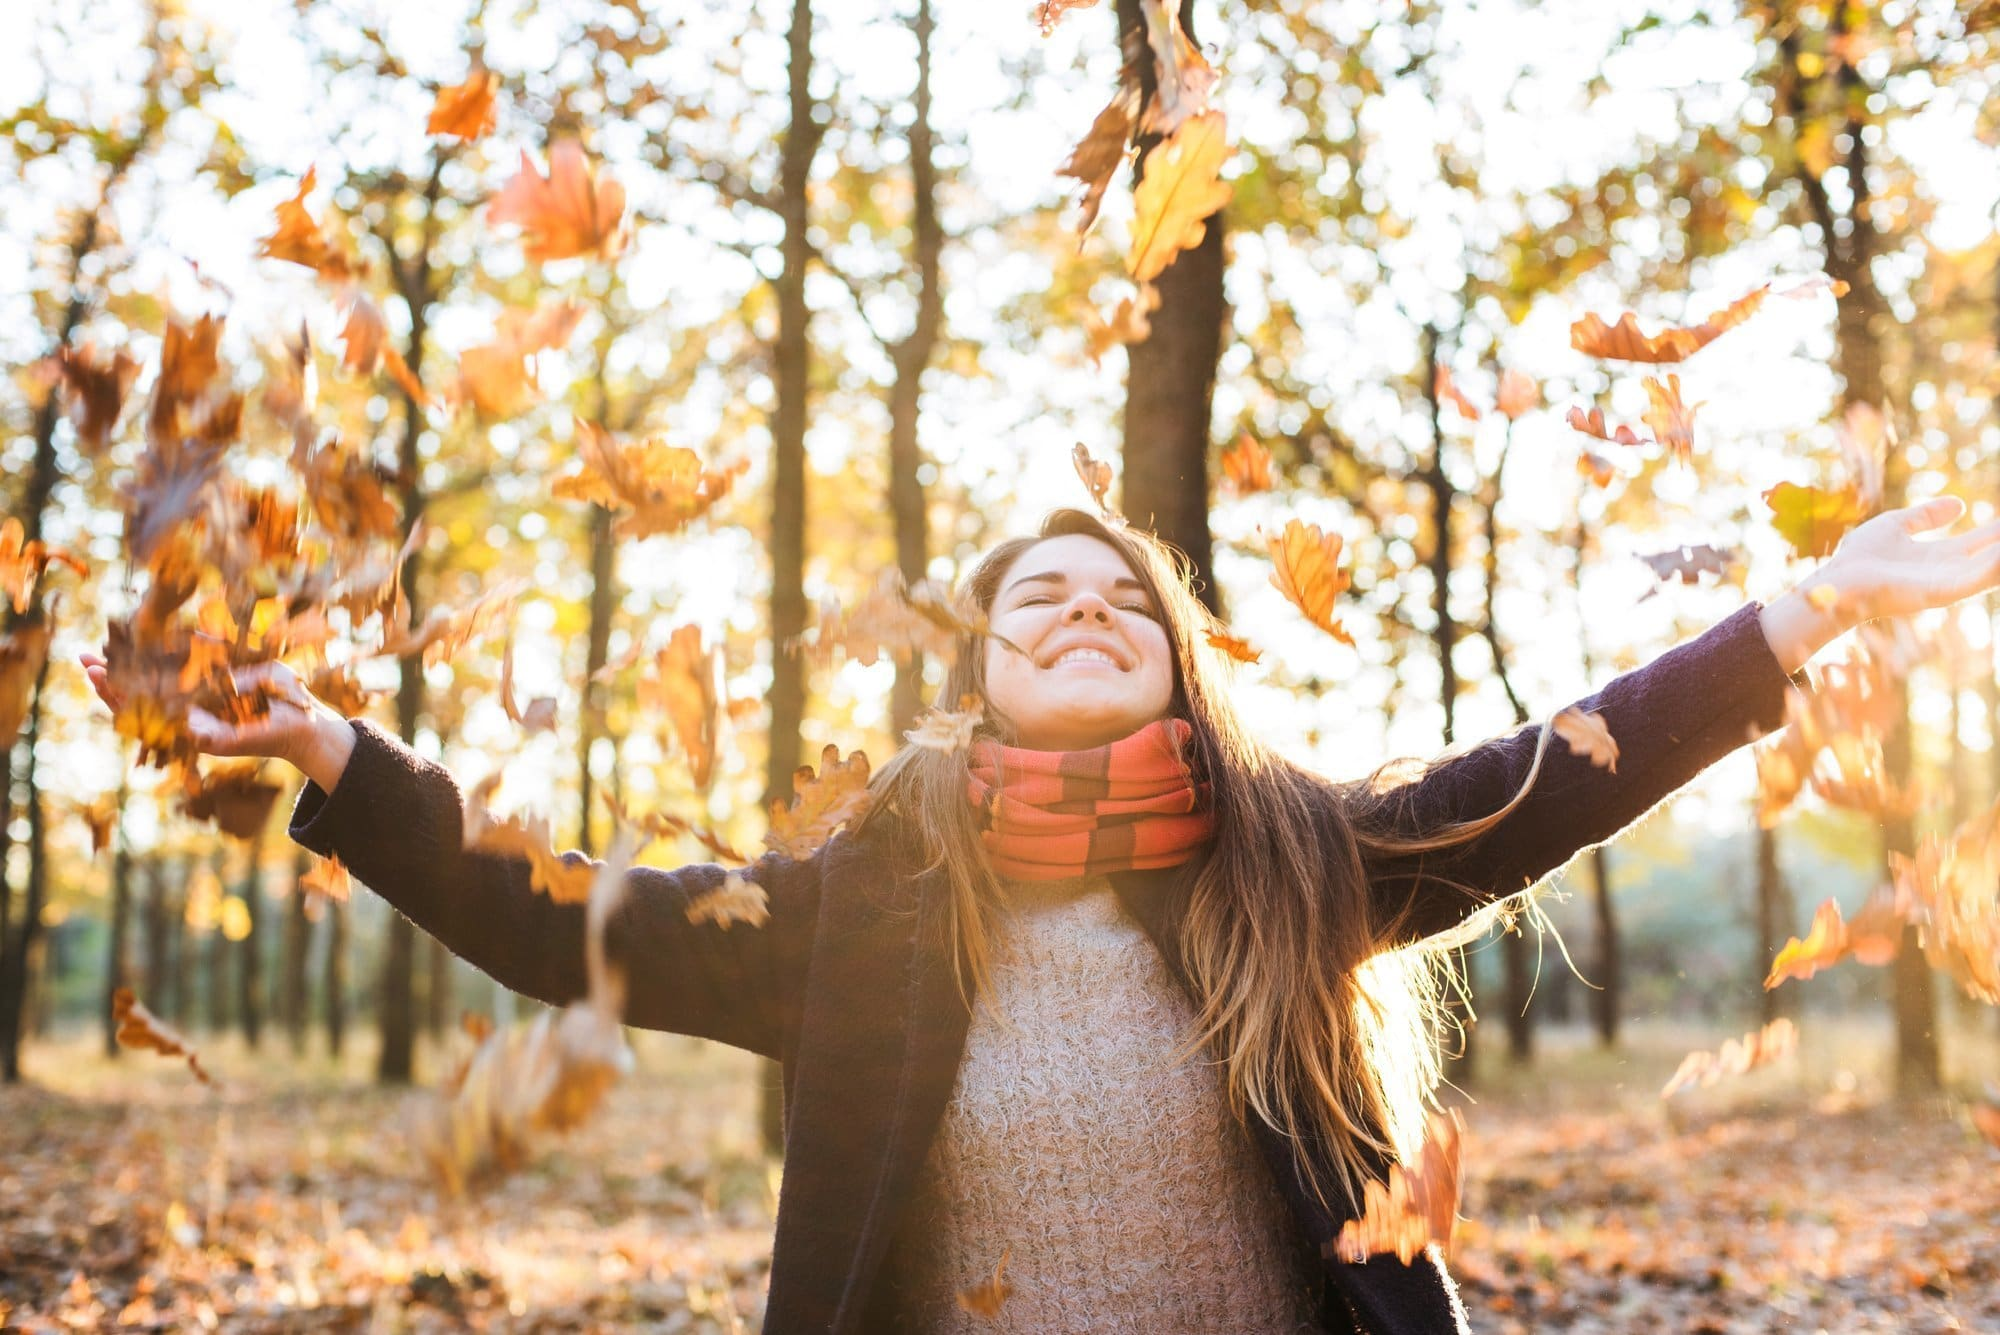 Why Fall is a Great Time for Outpatient Eating Disorder Treatment